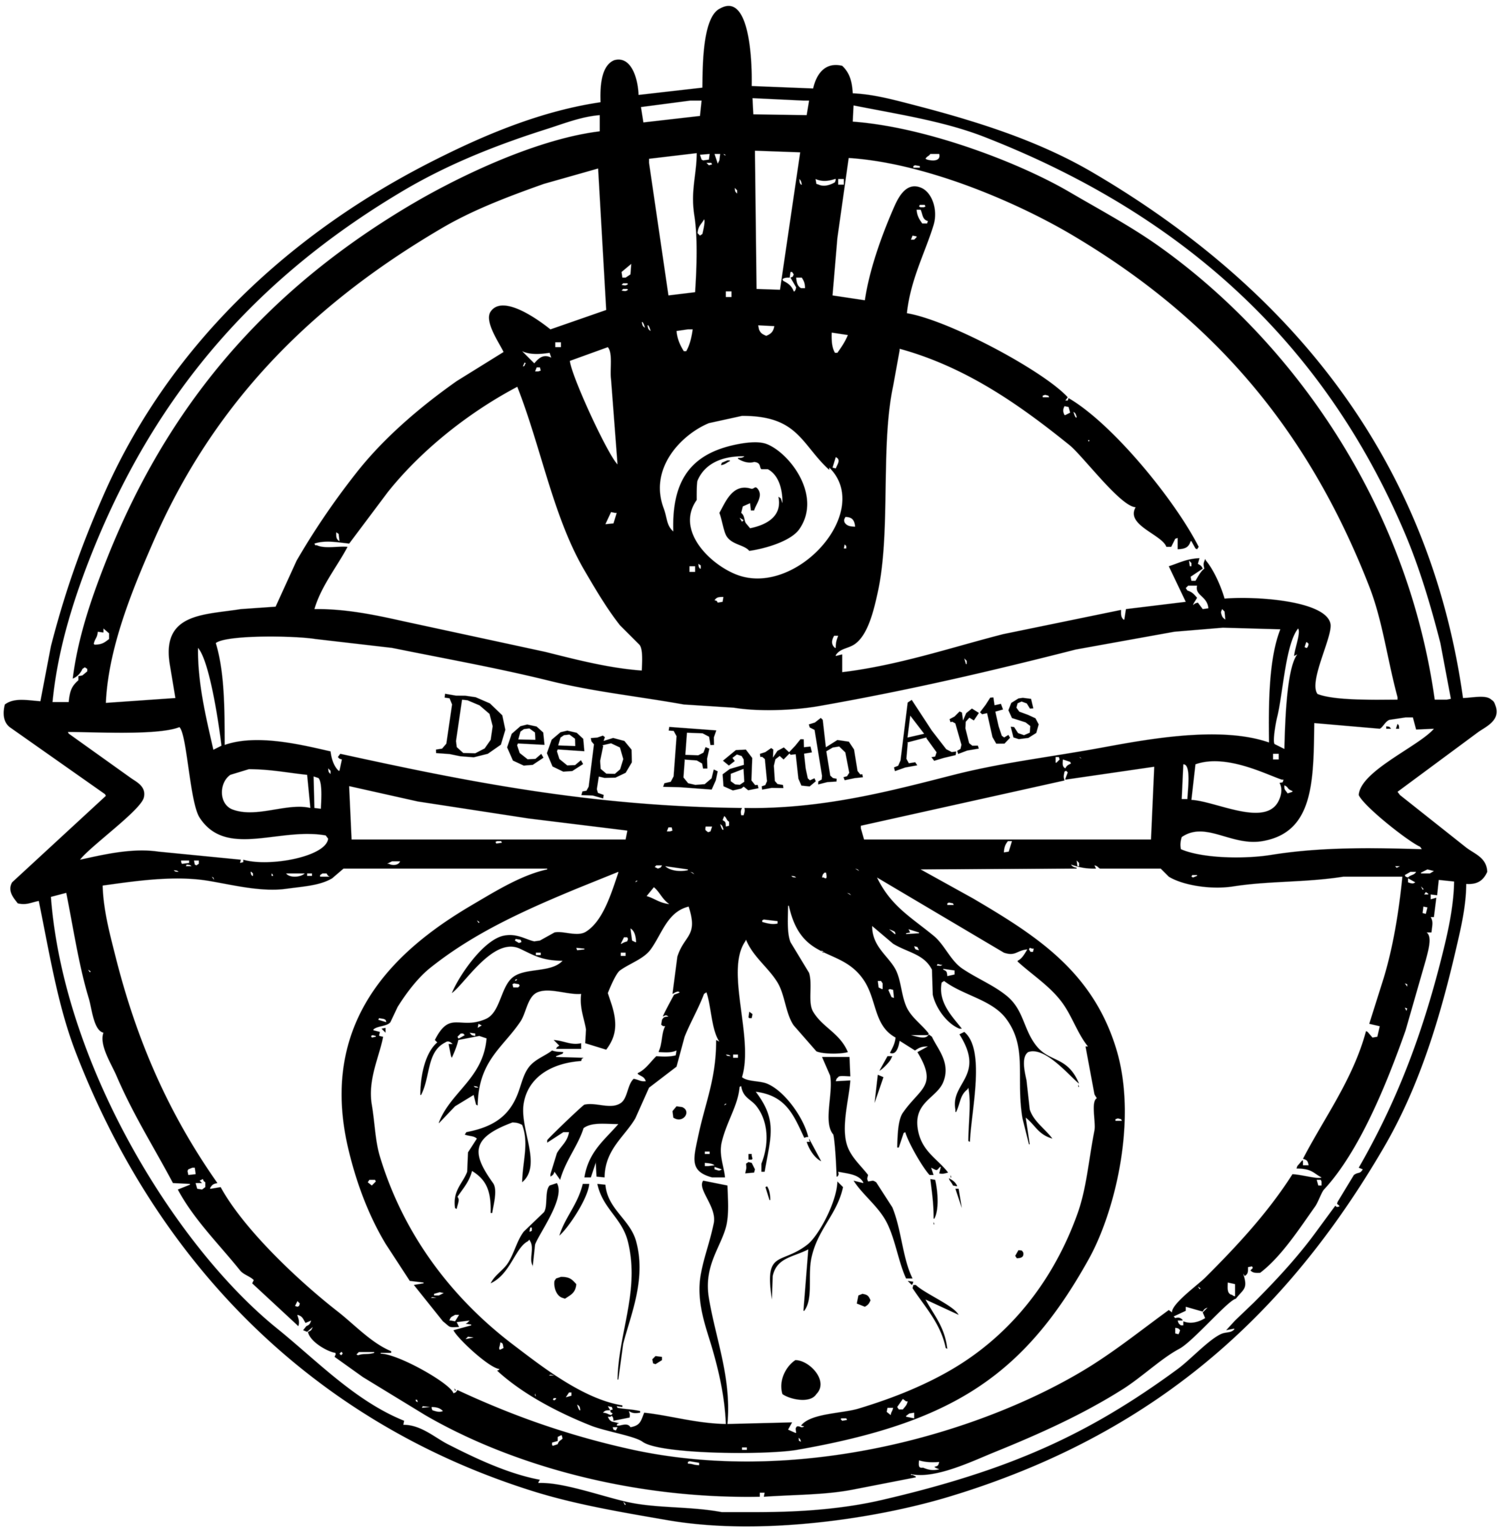 Deep Earth Arts